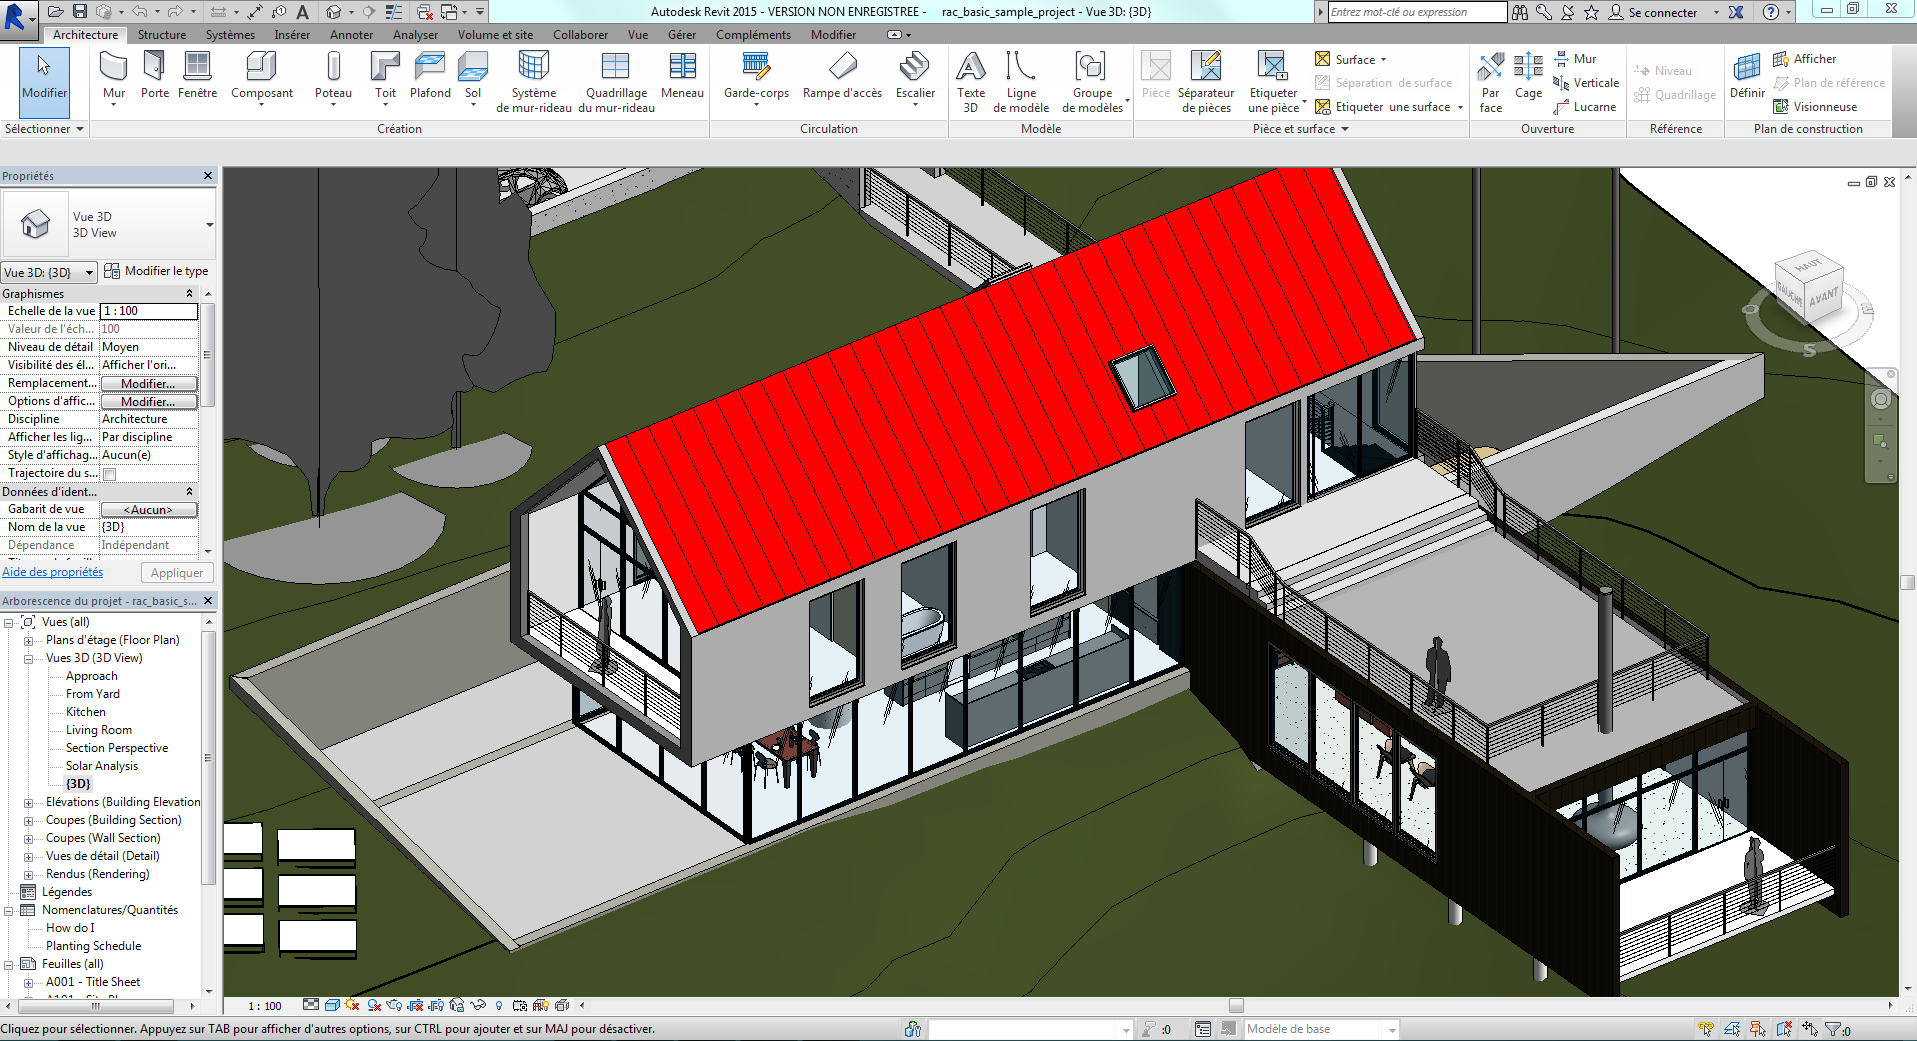 Autodesk_Revit_2015_02